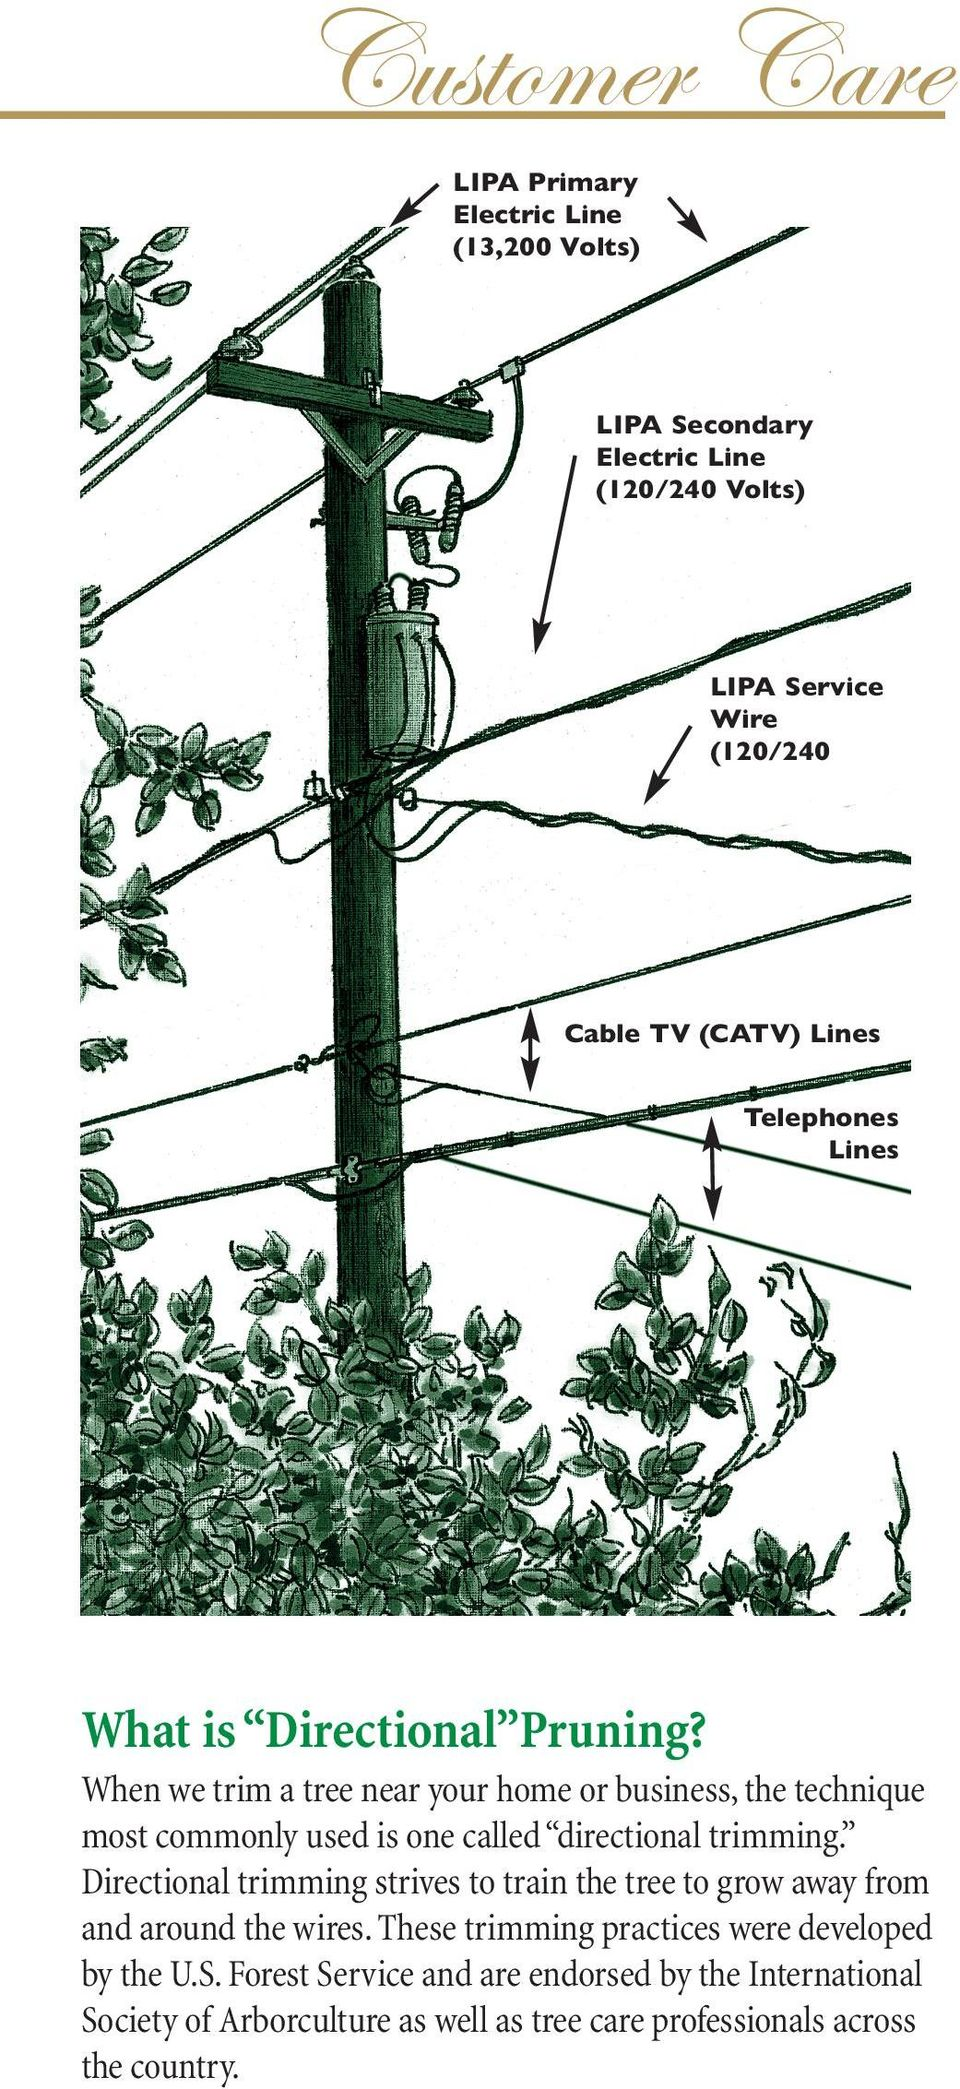 When we trim a tree near your home or business, the technique most commonly used is one called directional trimming.